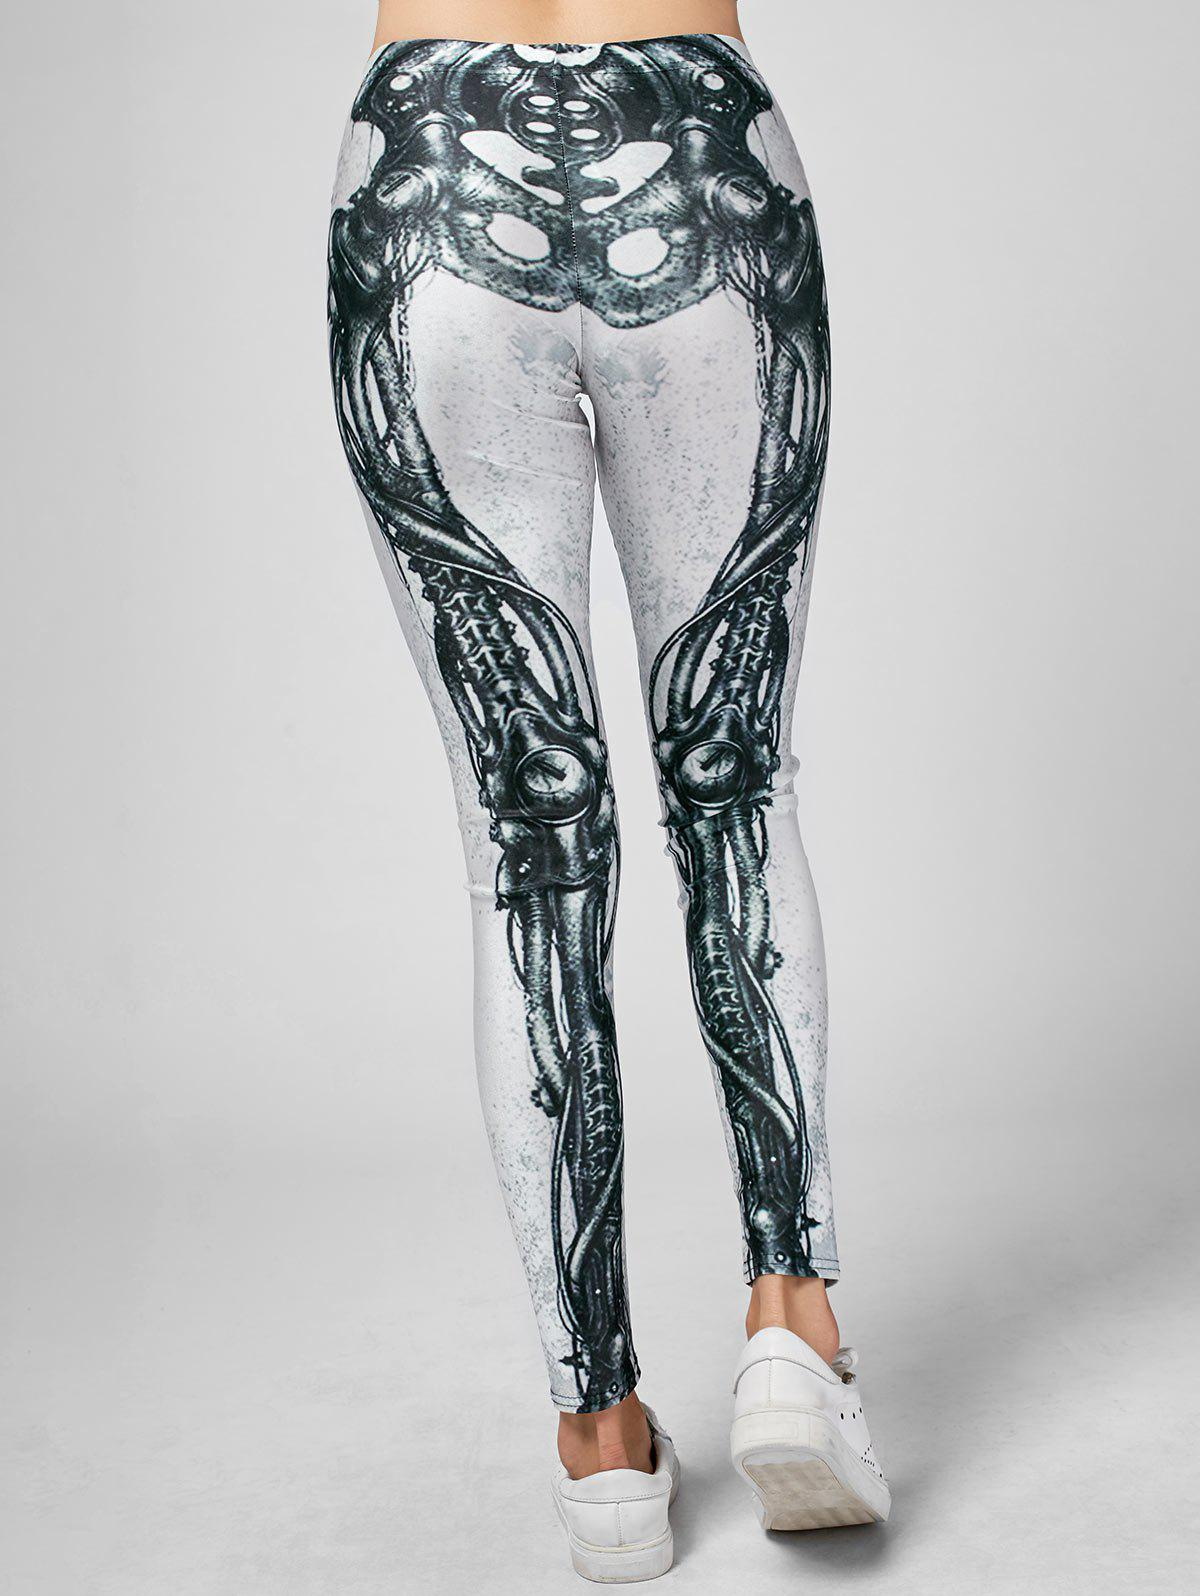 Skeleton Print High Waist Skinny Leggings - BLACK / WHITE S